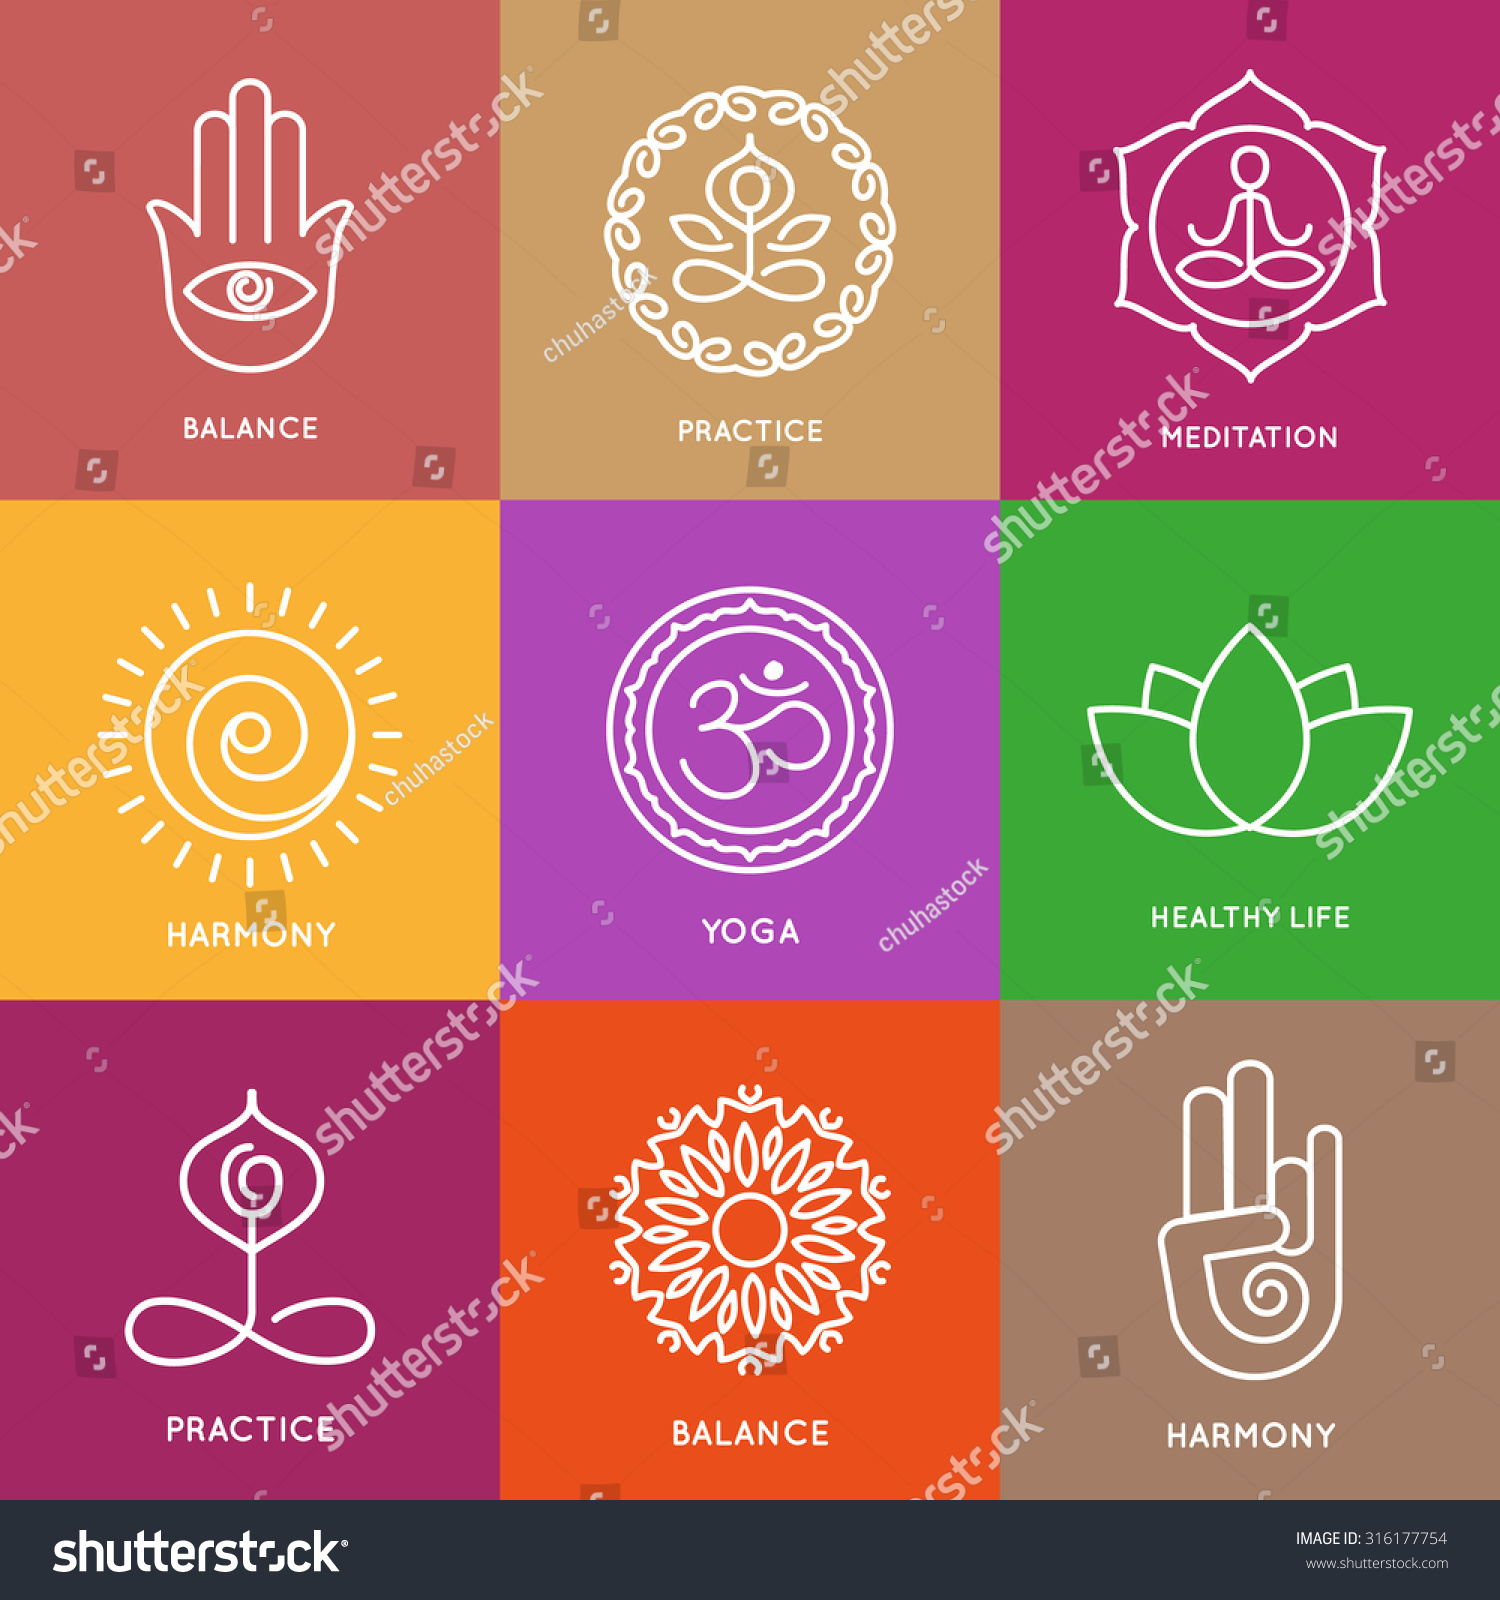 Graphic Design Elements Line : Yoga line symbols in colorful squares vector icons set